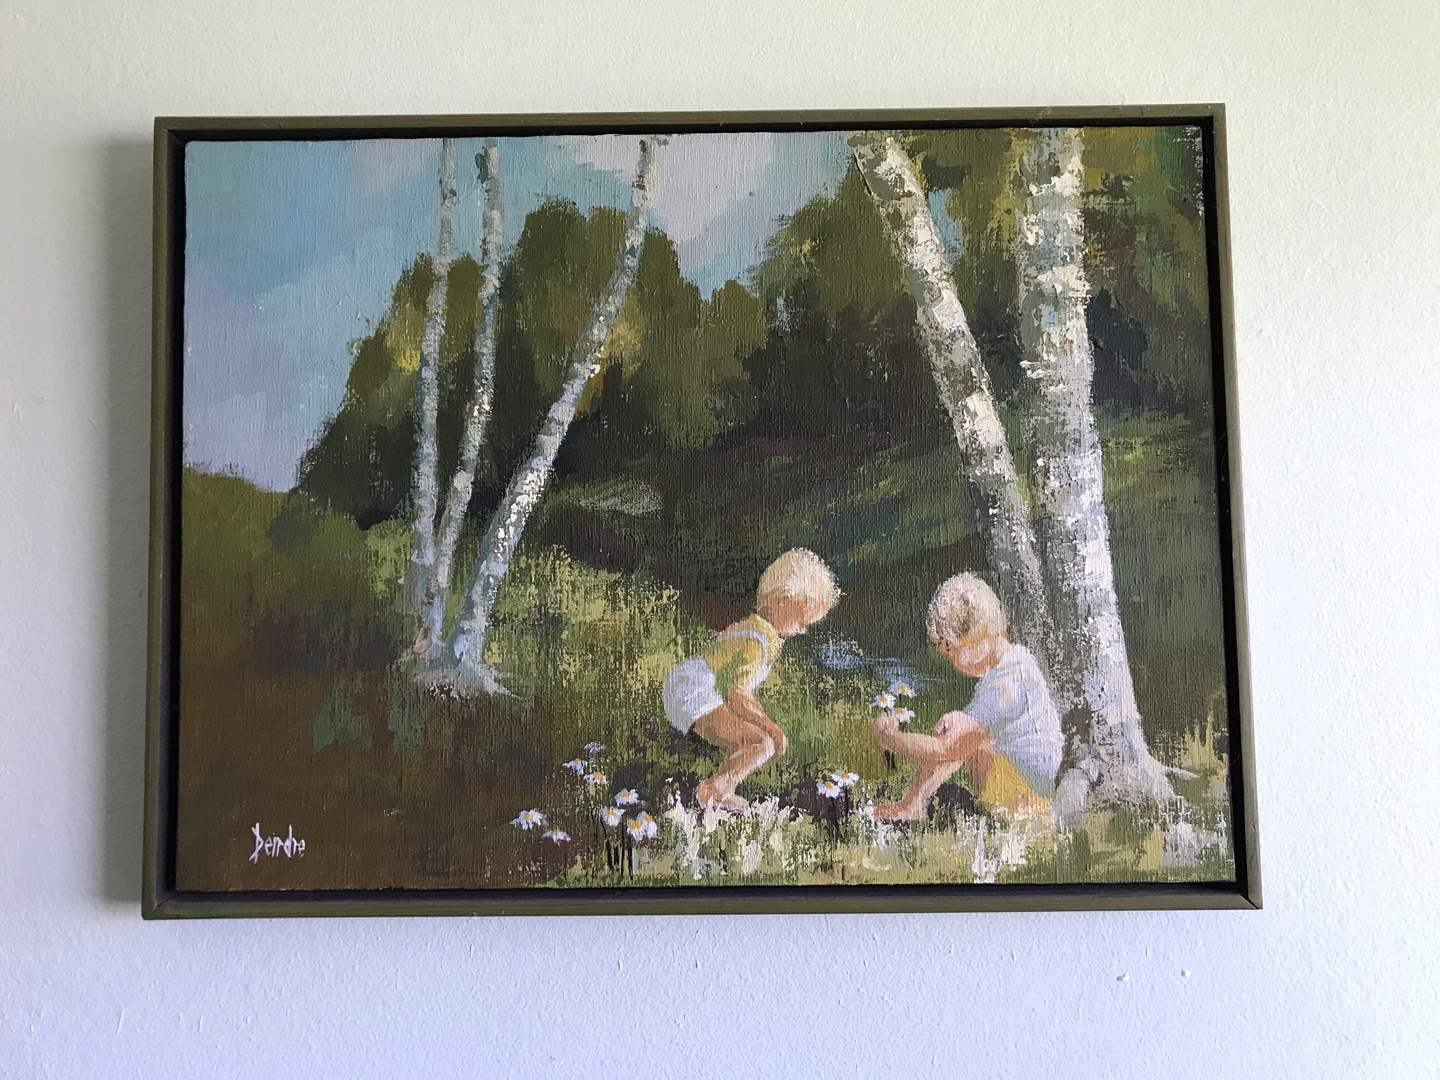 Lot # 106 - Oil on Canvas Signed by Dendre (main image)